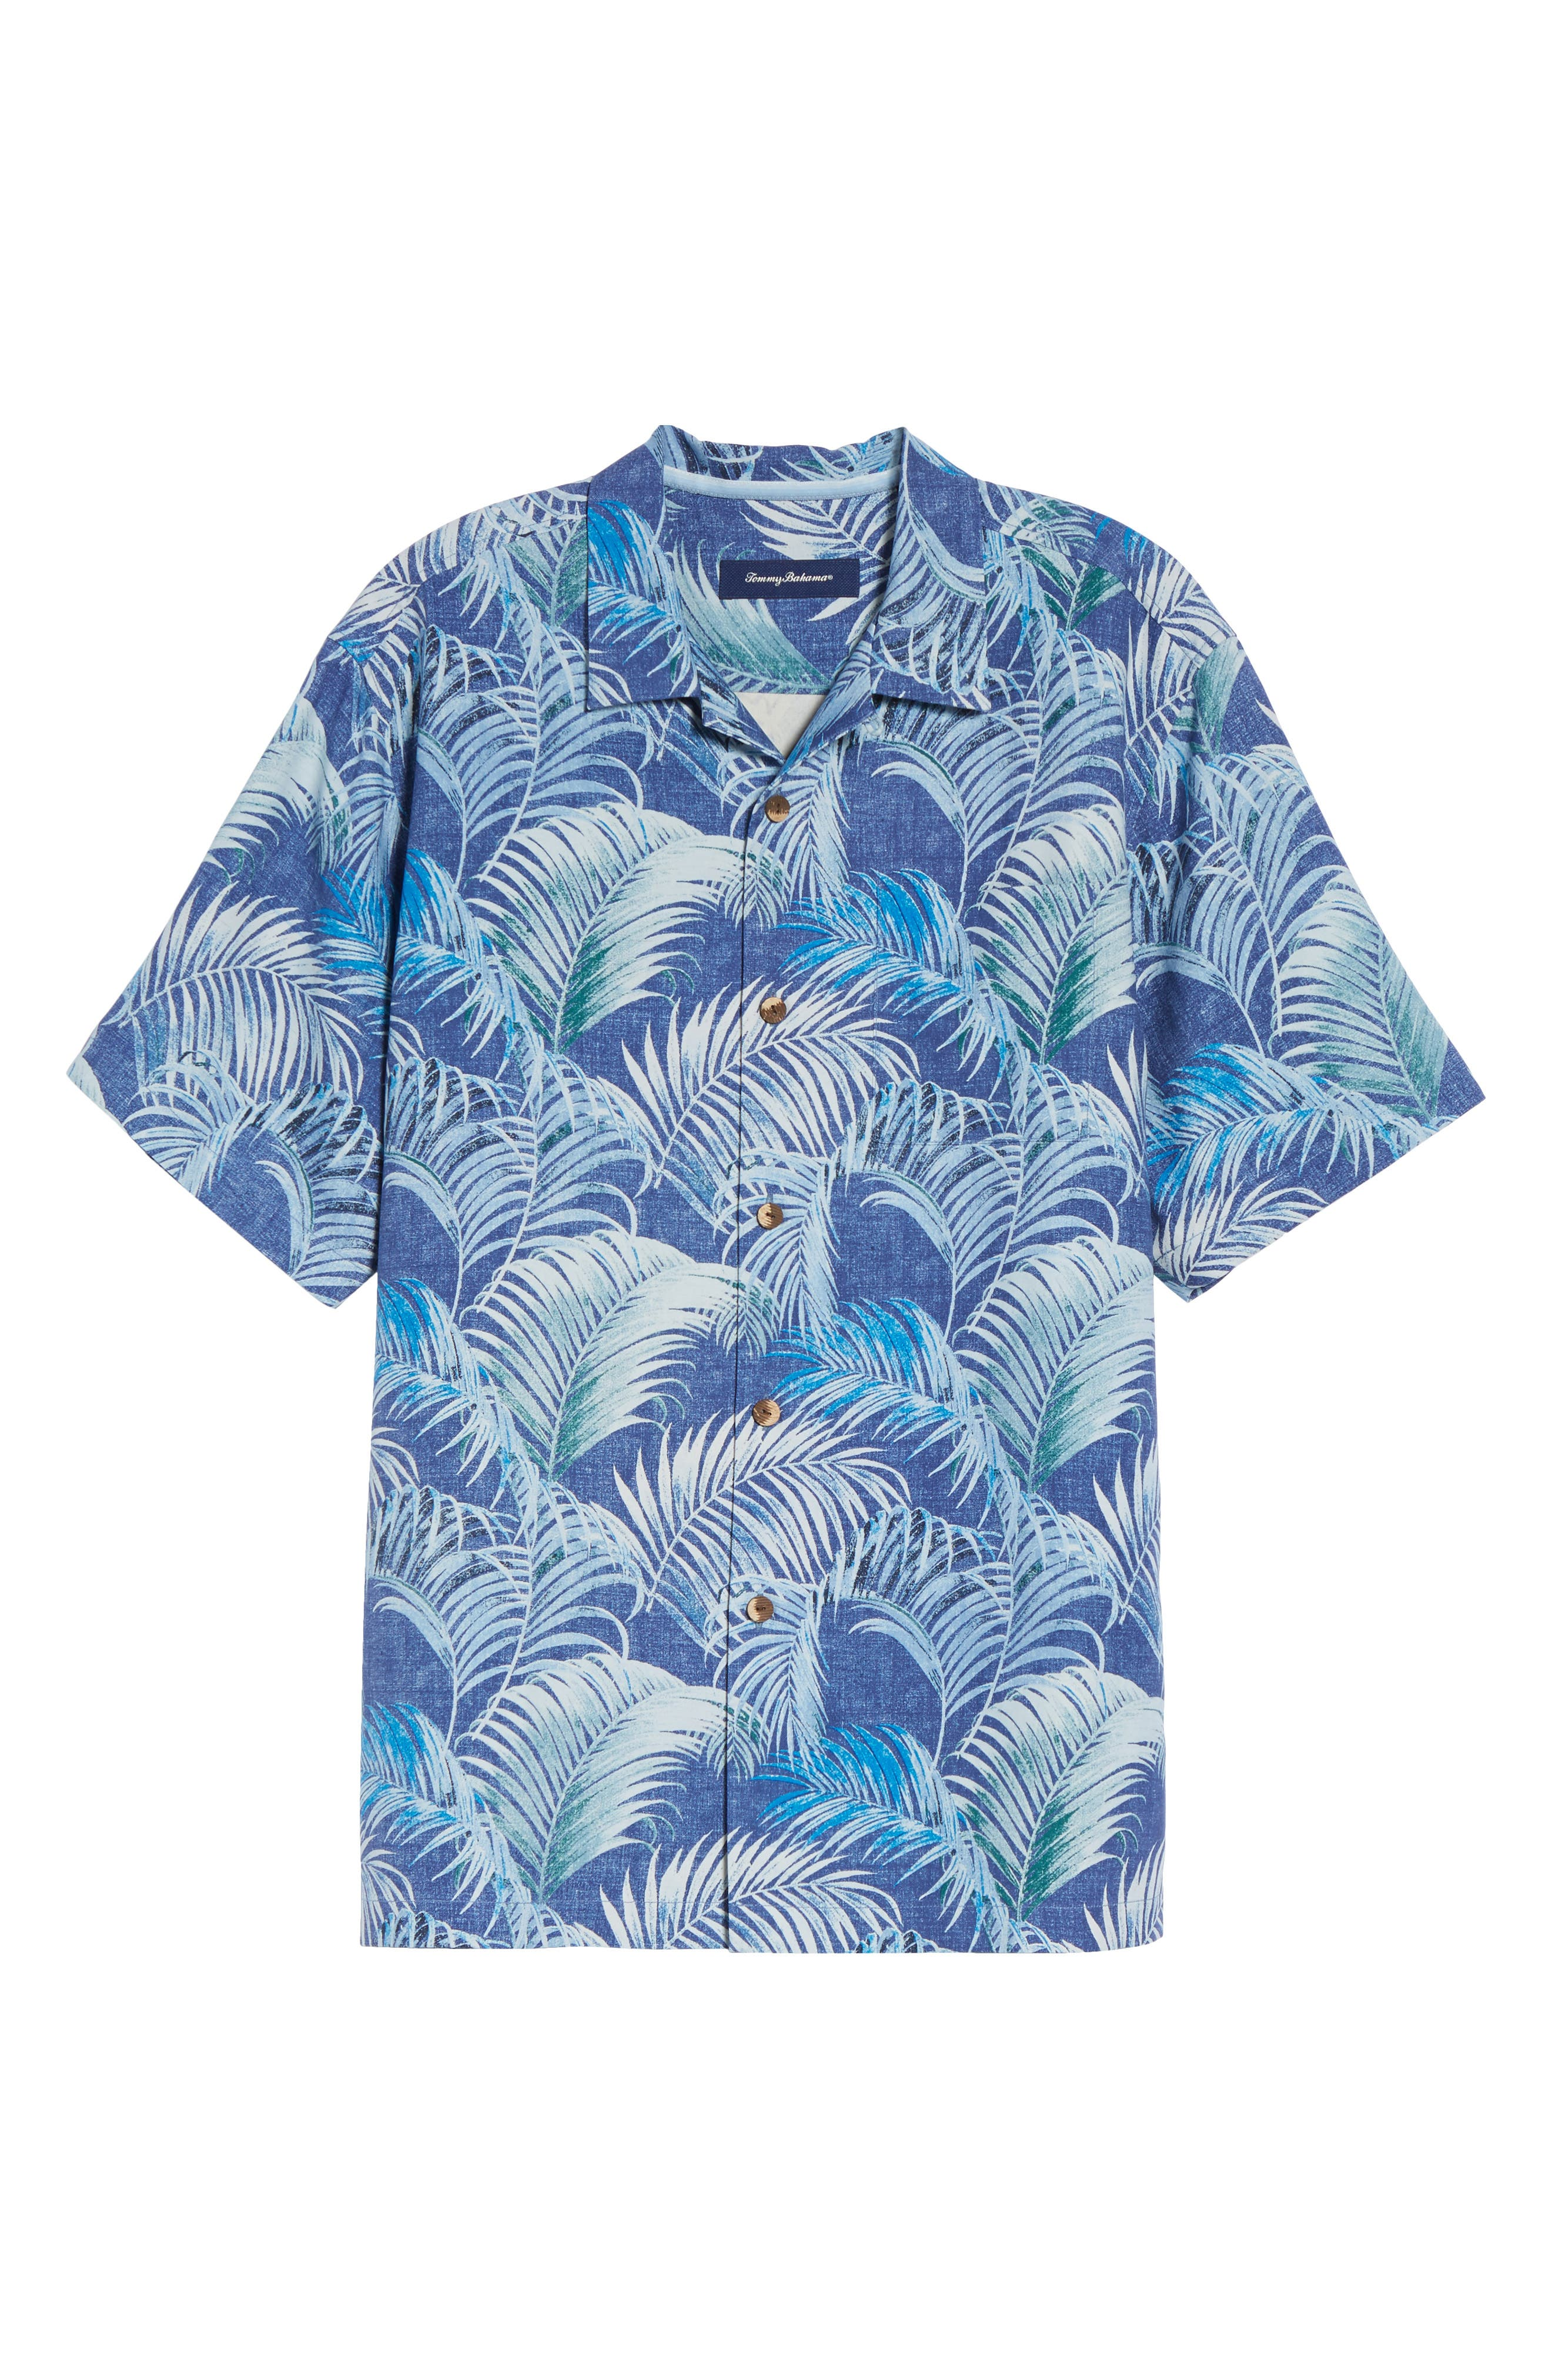 Garden of Hope and Courage Silk Camp Shirt,                             Alternate thumbnail 6, color,                             Eclipse